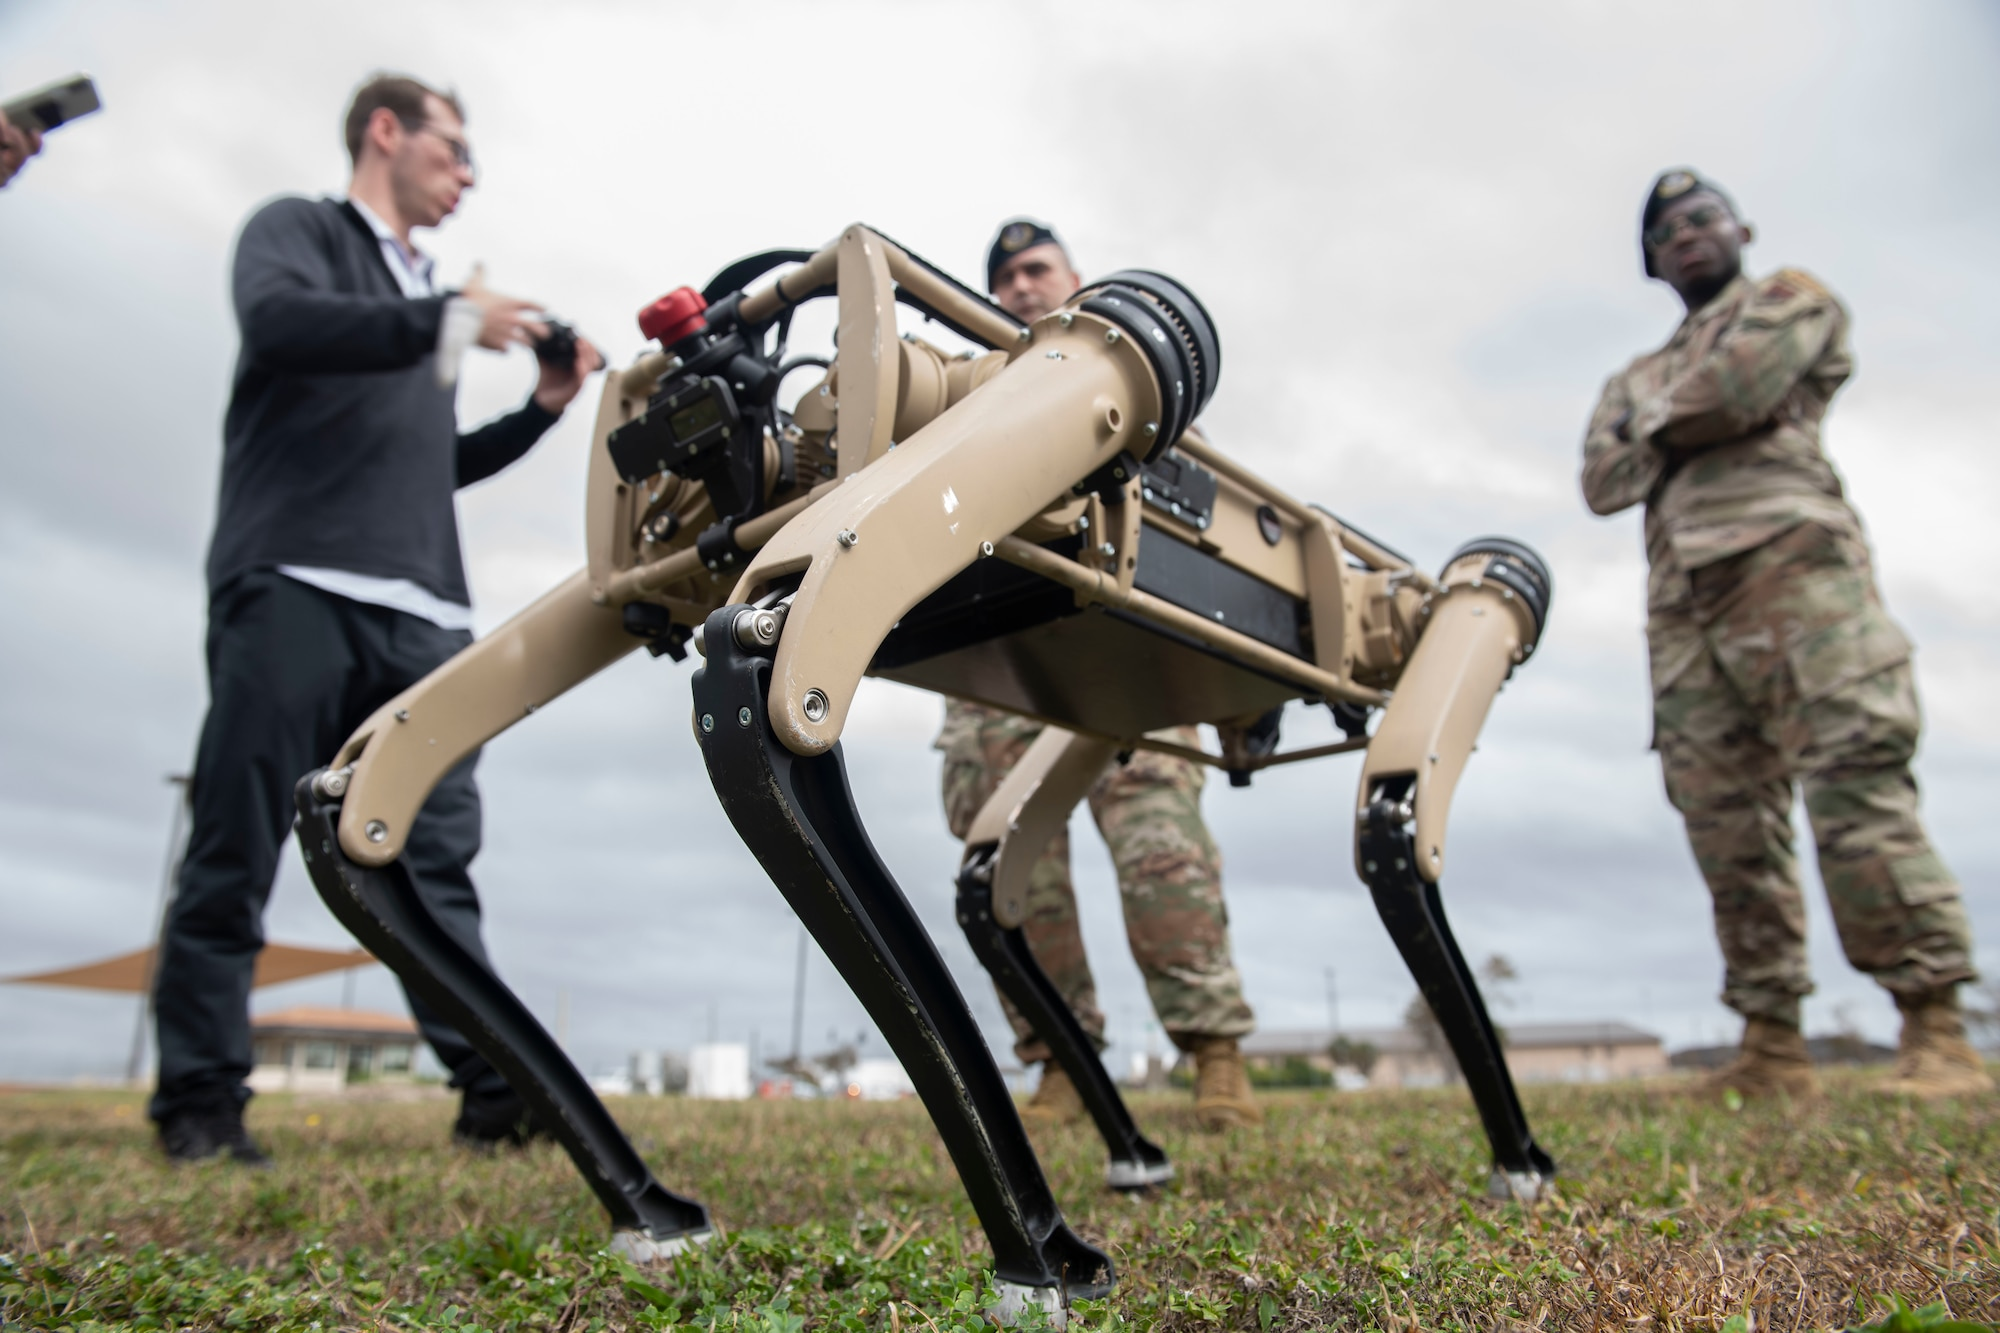 unmanned ground vehicle, men standing in background